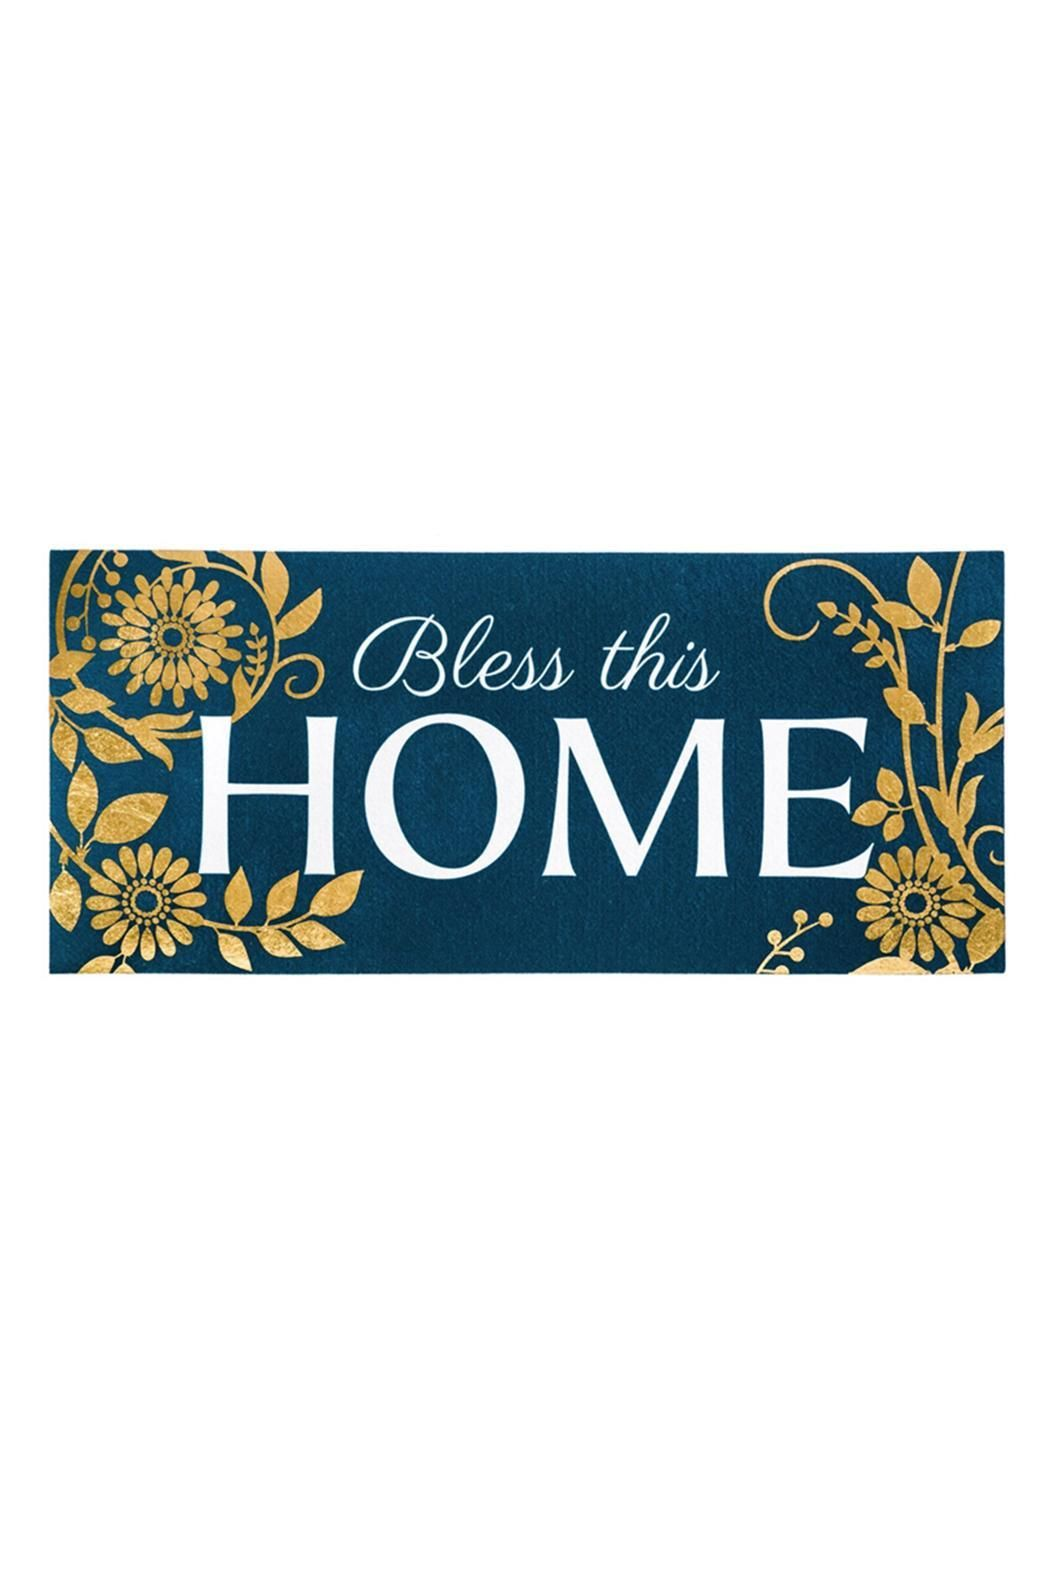 Sassafras Bless This Home Mat Insert Size 10 X 22 X 0 2 Bless This Home Mat By Evergreen Enterprises Missouri Home Switch Outdoor Door Mat Door Mat